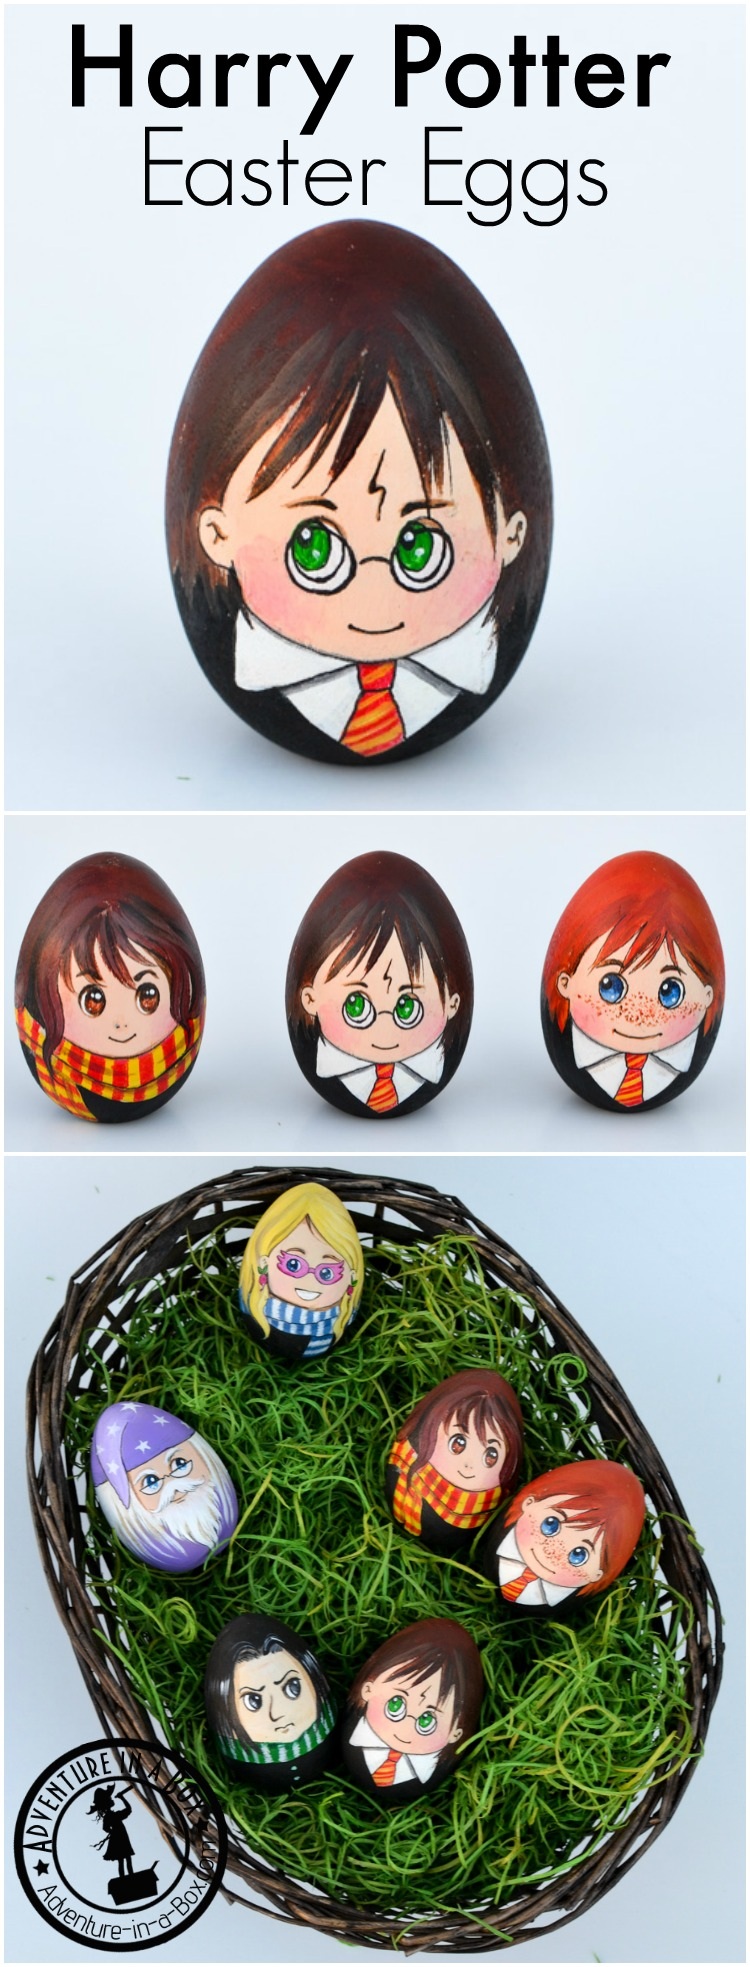 Celebrate Easter with a set of Harry Potter Easter Eggs! A quirky craft for Harry Potter fans. Have you seen that egg-shaped Snape?